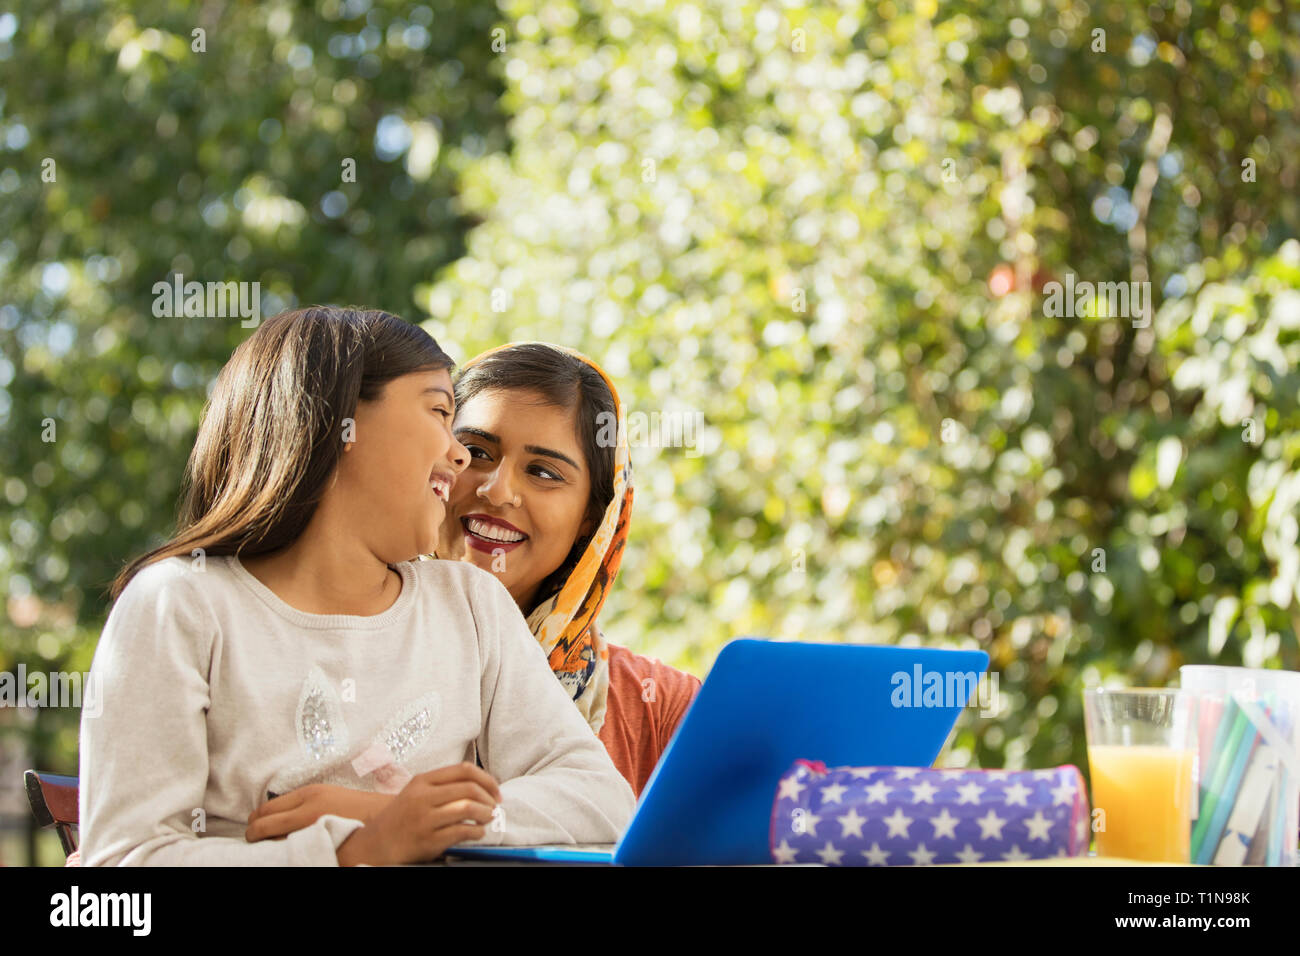 Happy mother and daughter using laptop on patio Stock Photo